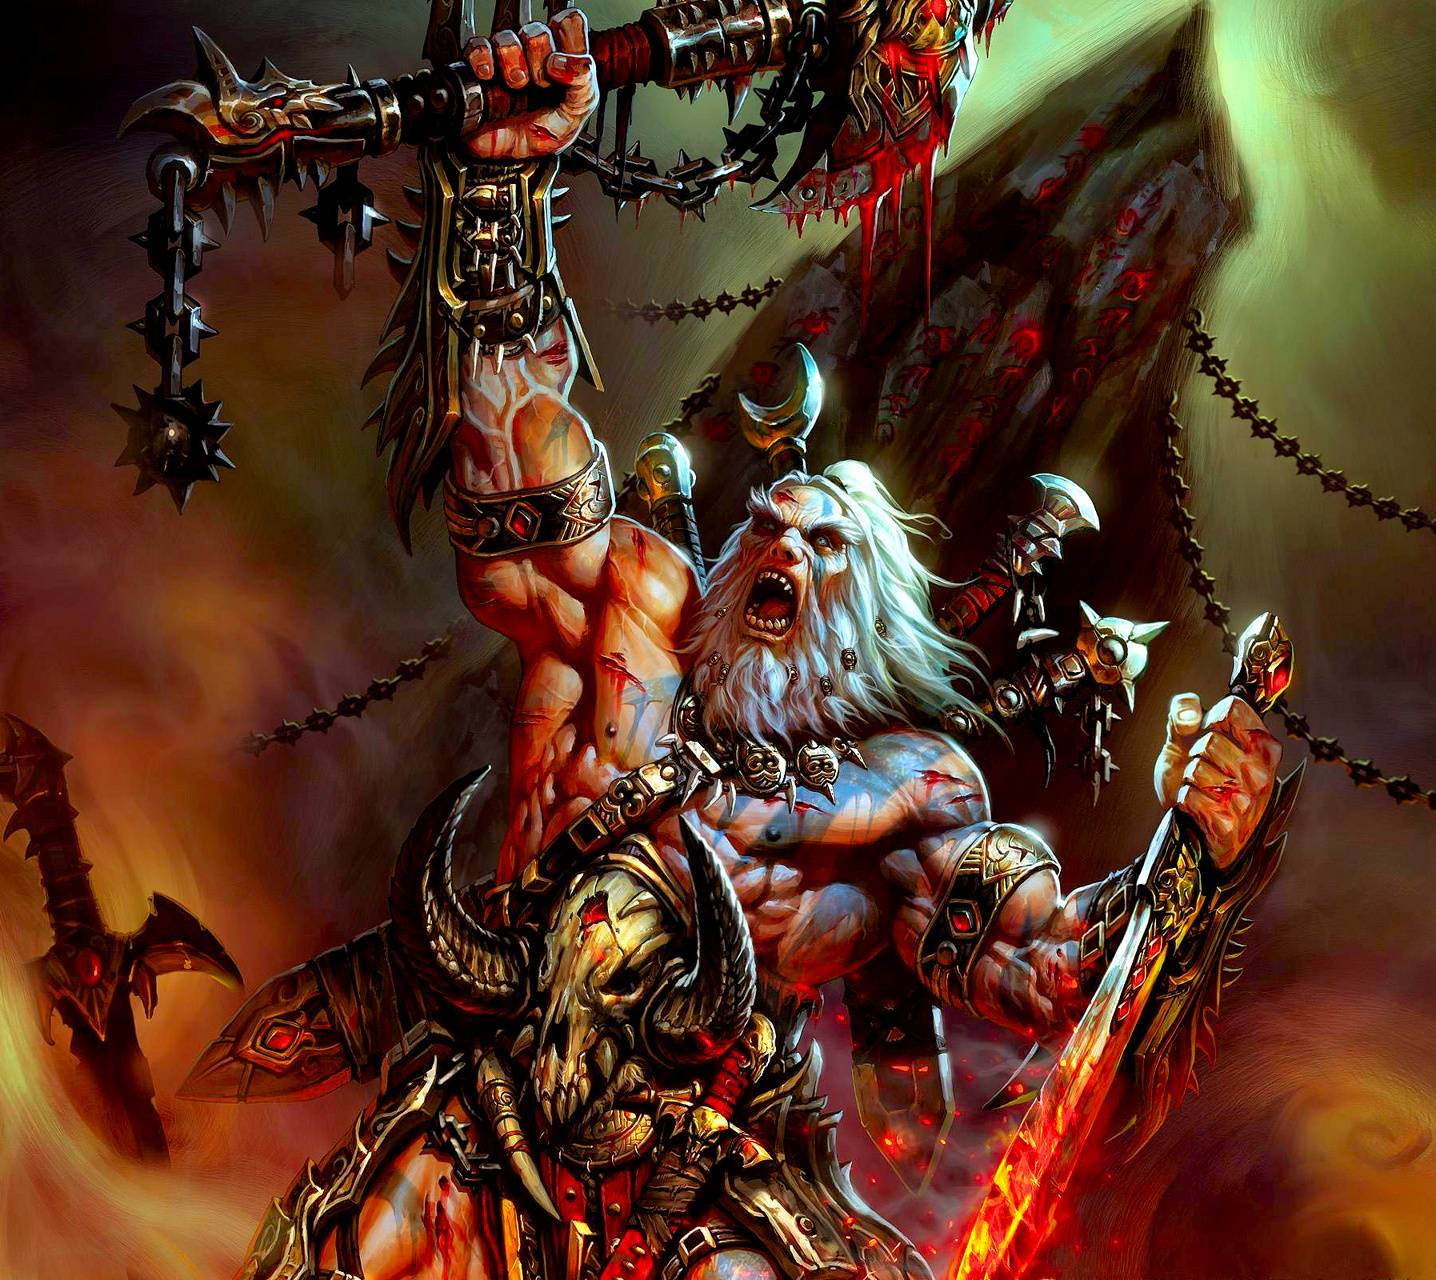 Diablo 3 - Warrior